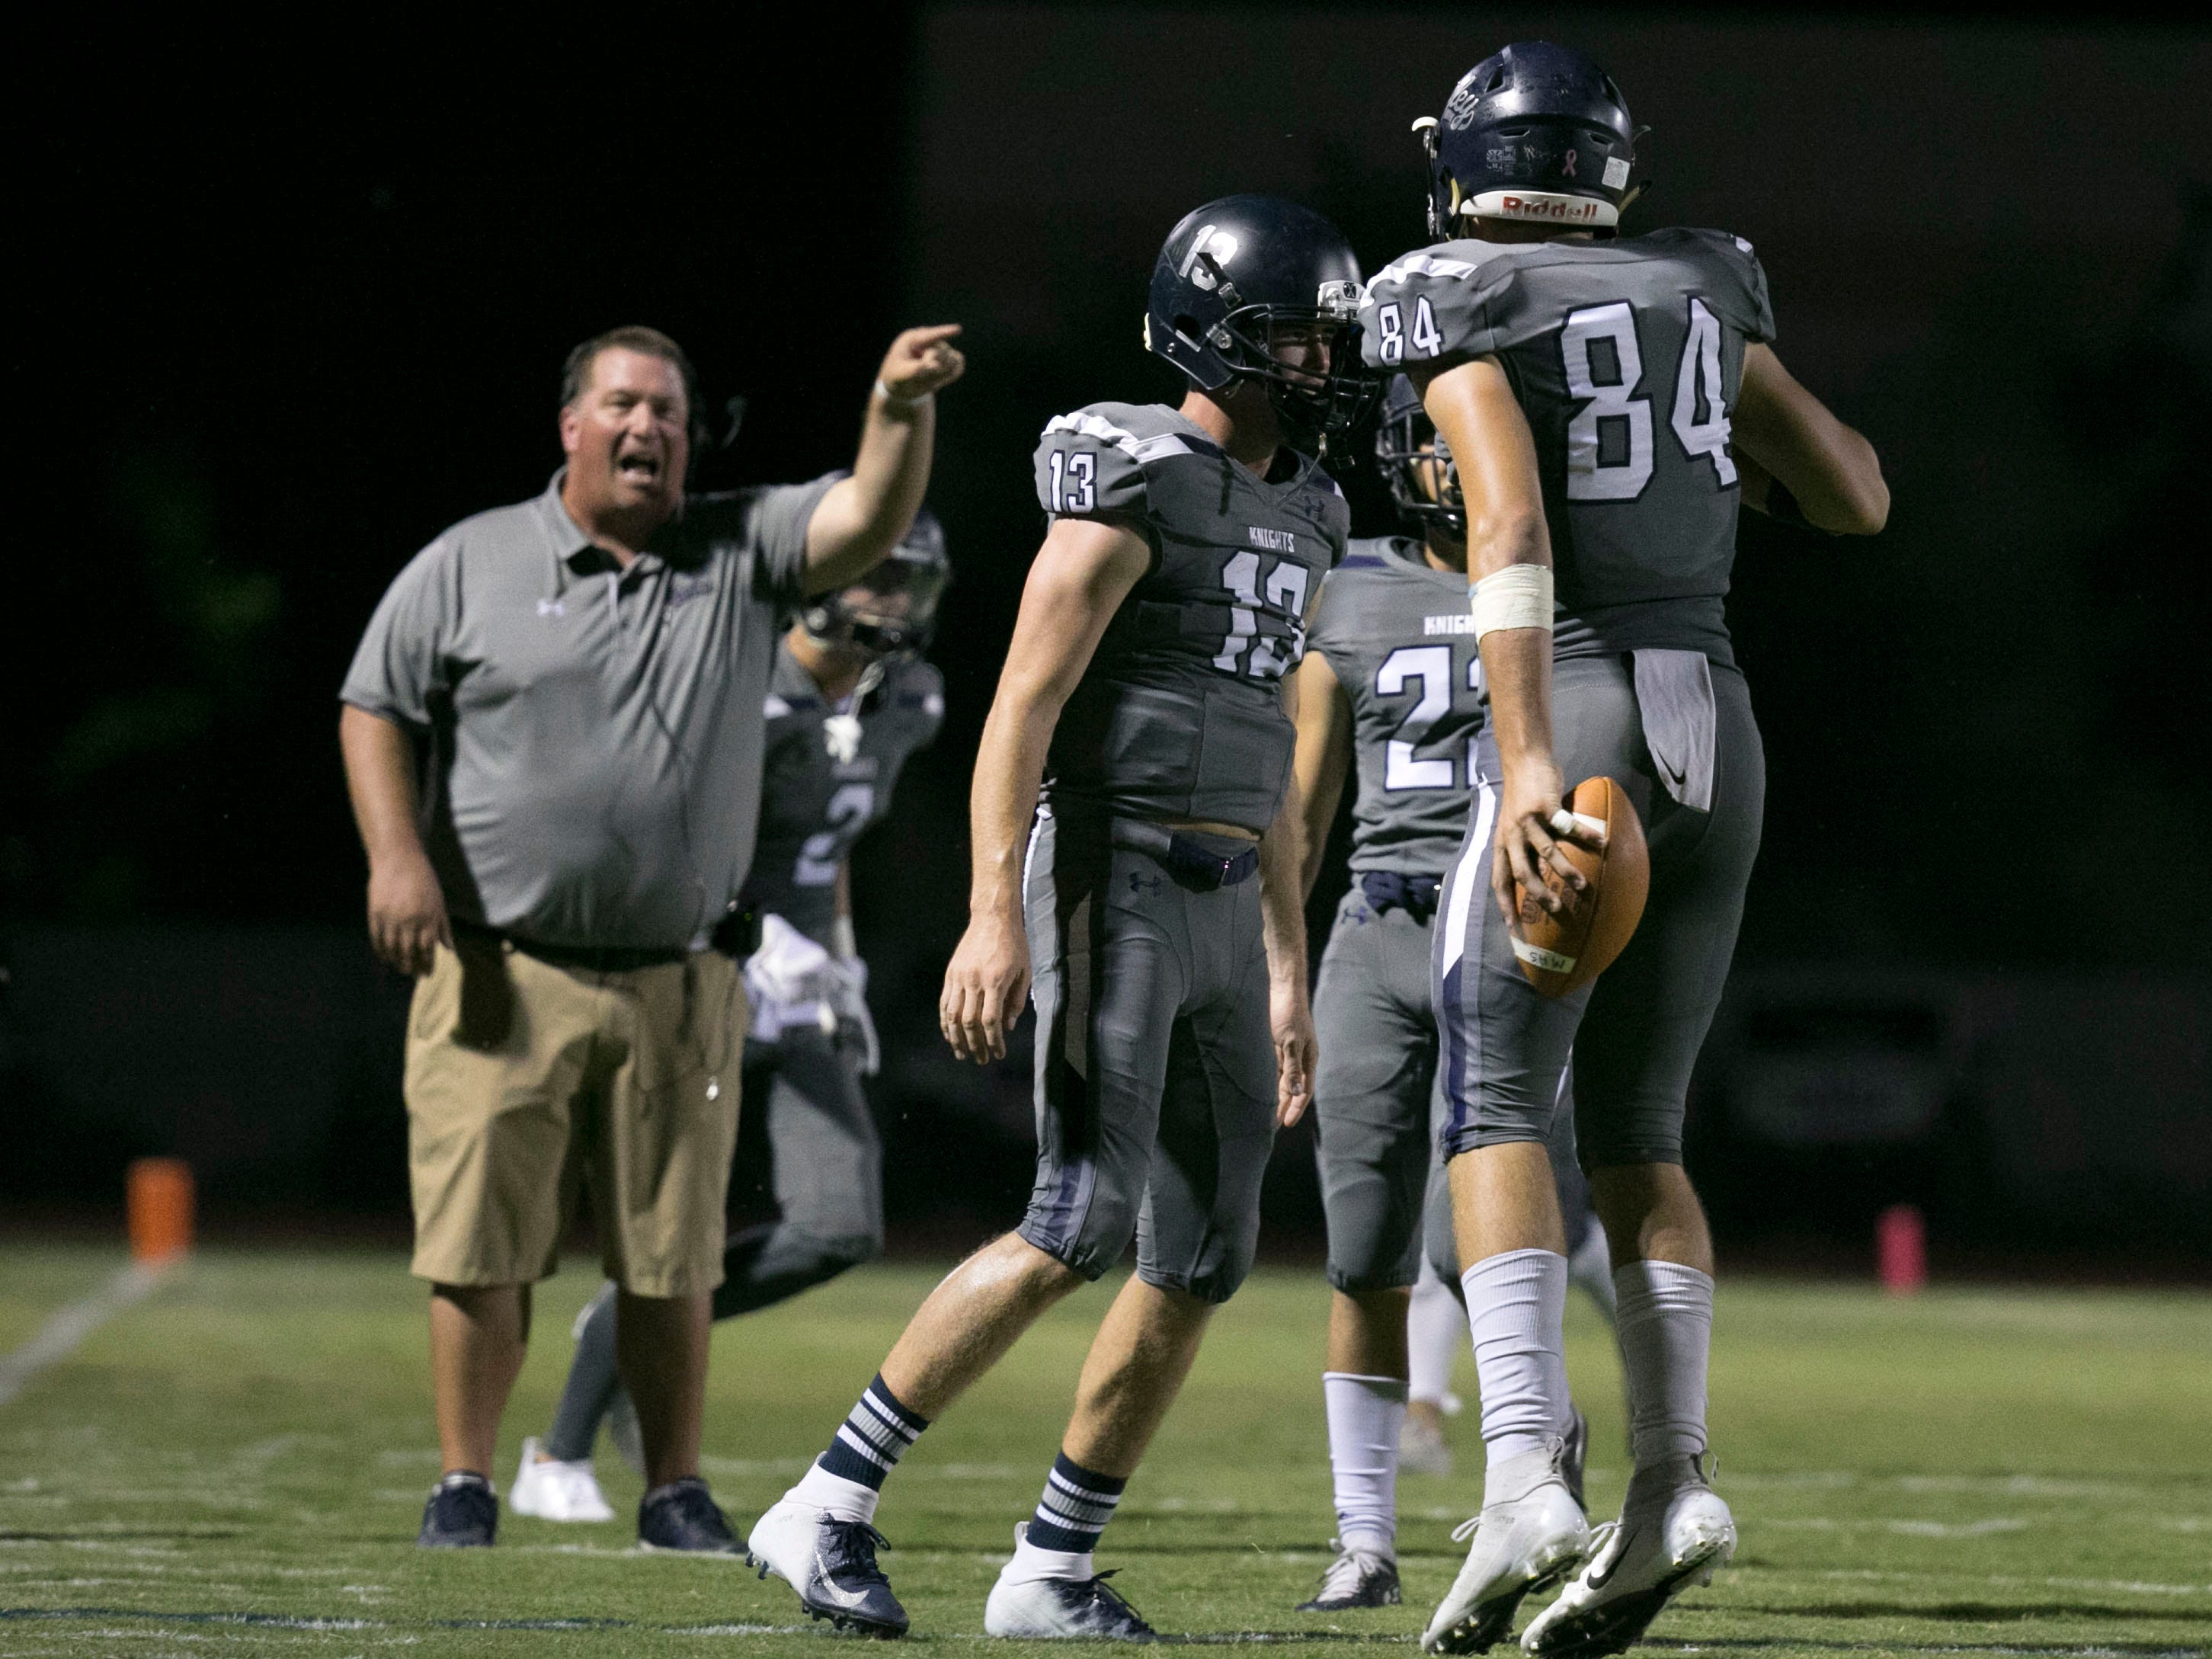 Higley High's Logan Maxwell celebrates after scoring a touchdown after blocking a punt on Millennium High during the second quarter of the high school football game at Higley High in Gilbert on Friday evening, September 14, 2018. Higley High head football coach Eddy Zubey (background) yells for the celebration to end.